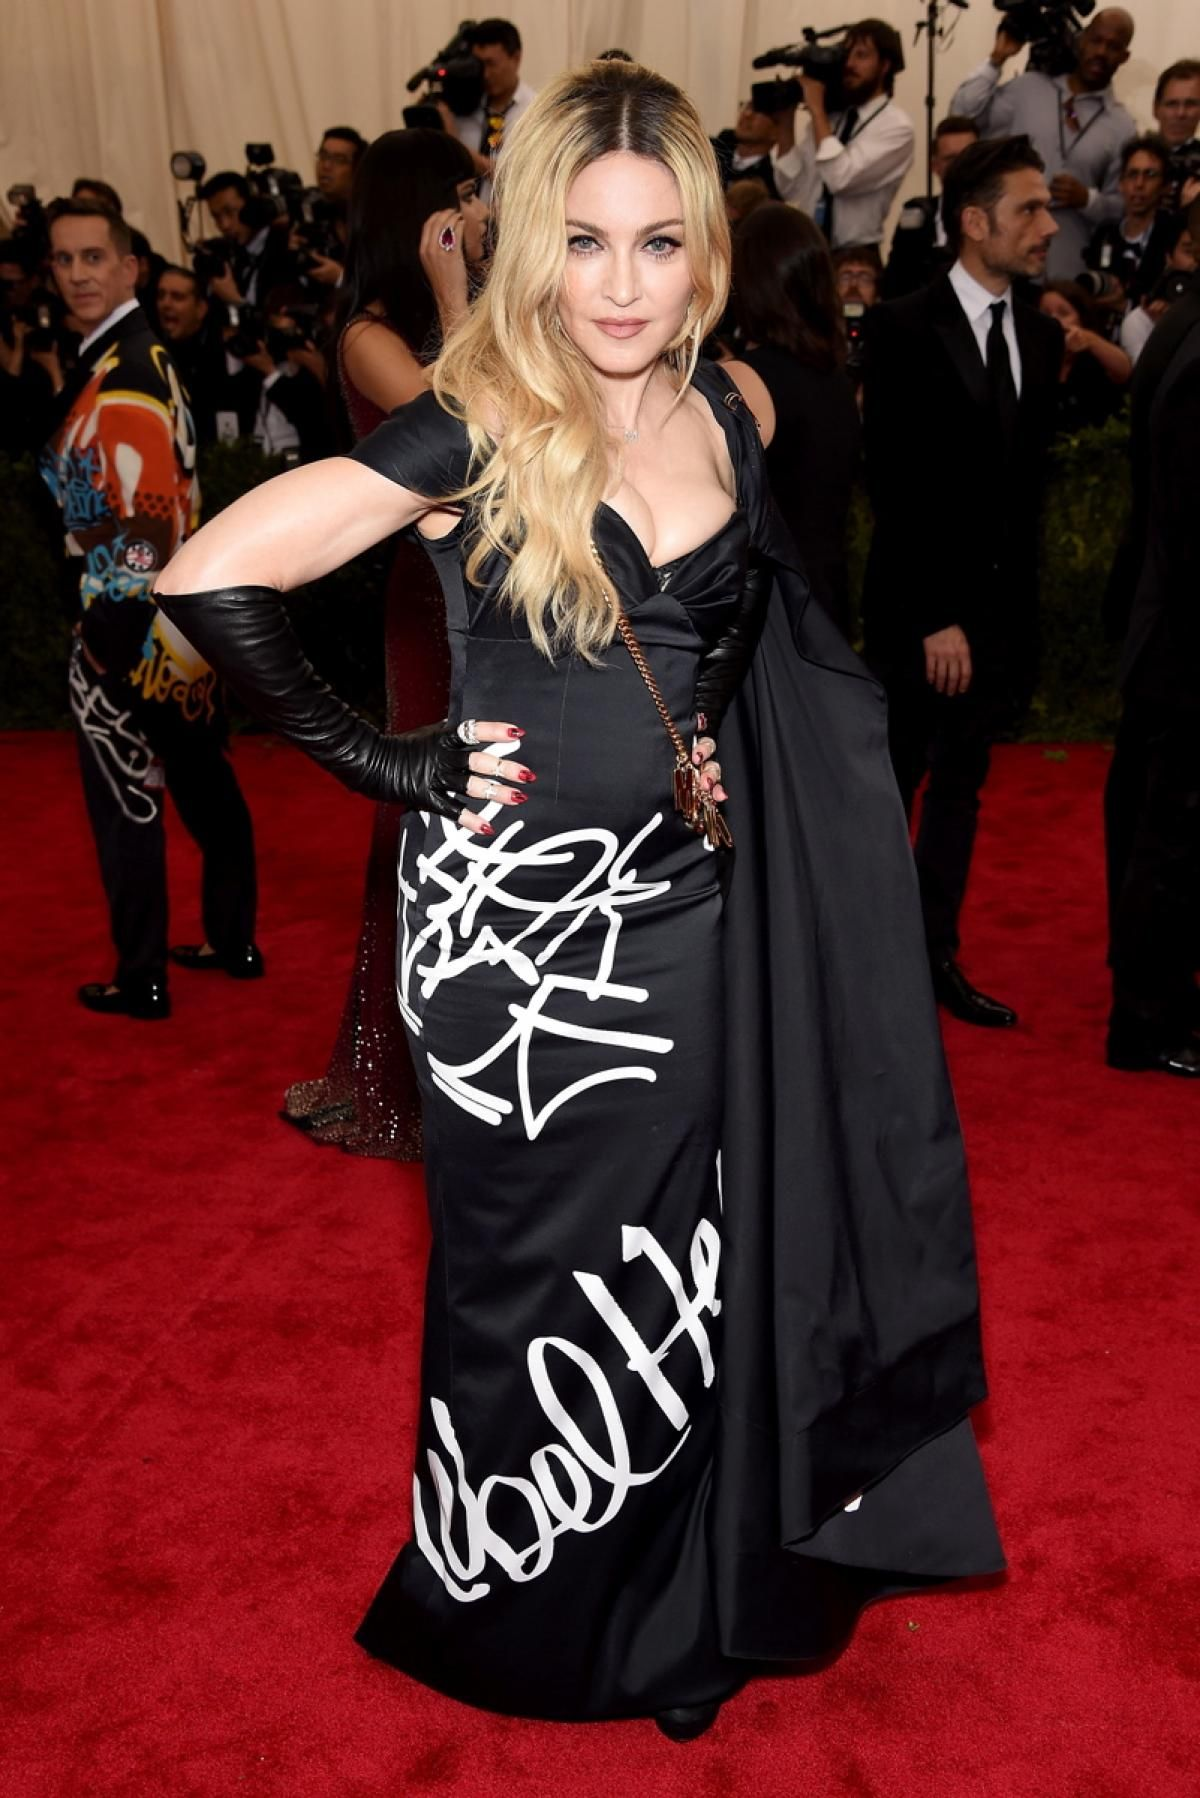 Madonna Photos Met Gala 2015 Best And Worst Red Carpet Looks On Fashion S Biggest Night Met Gala Looks Fashion Nice Dresses